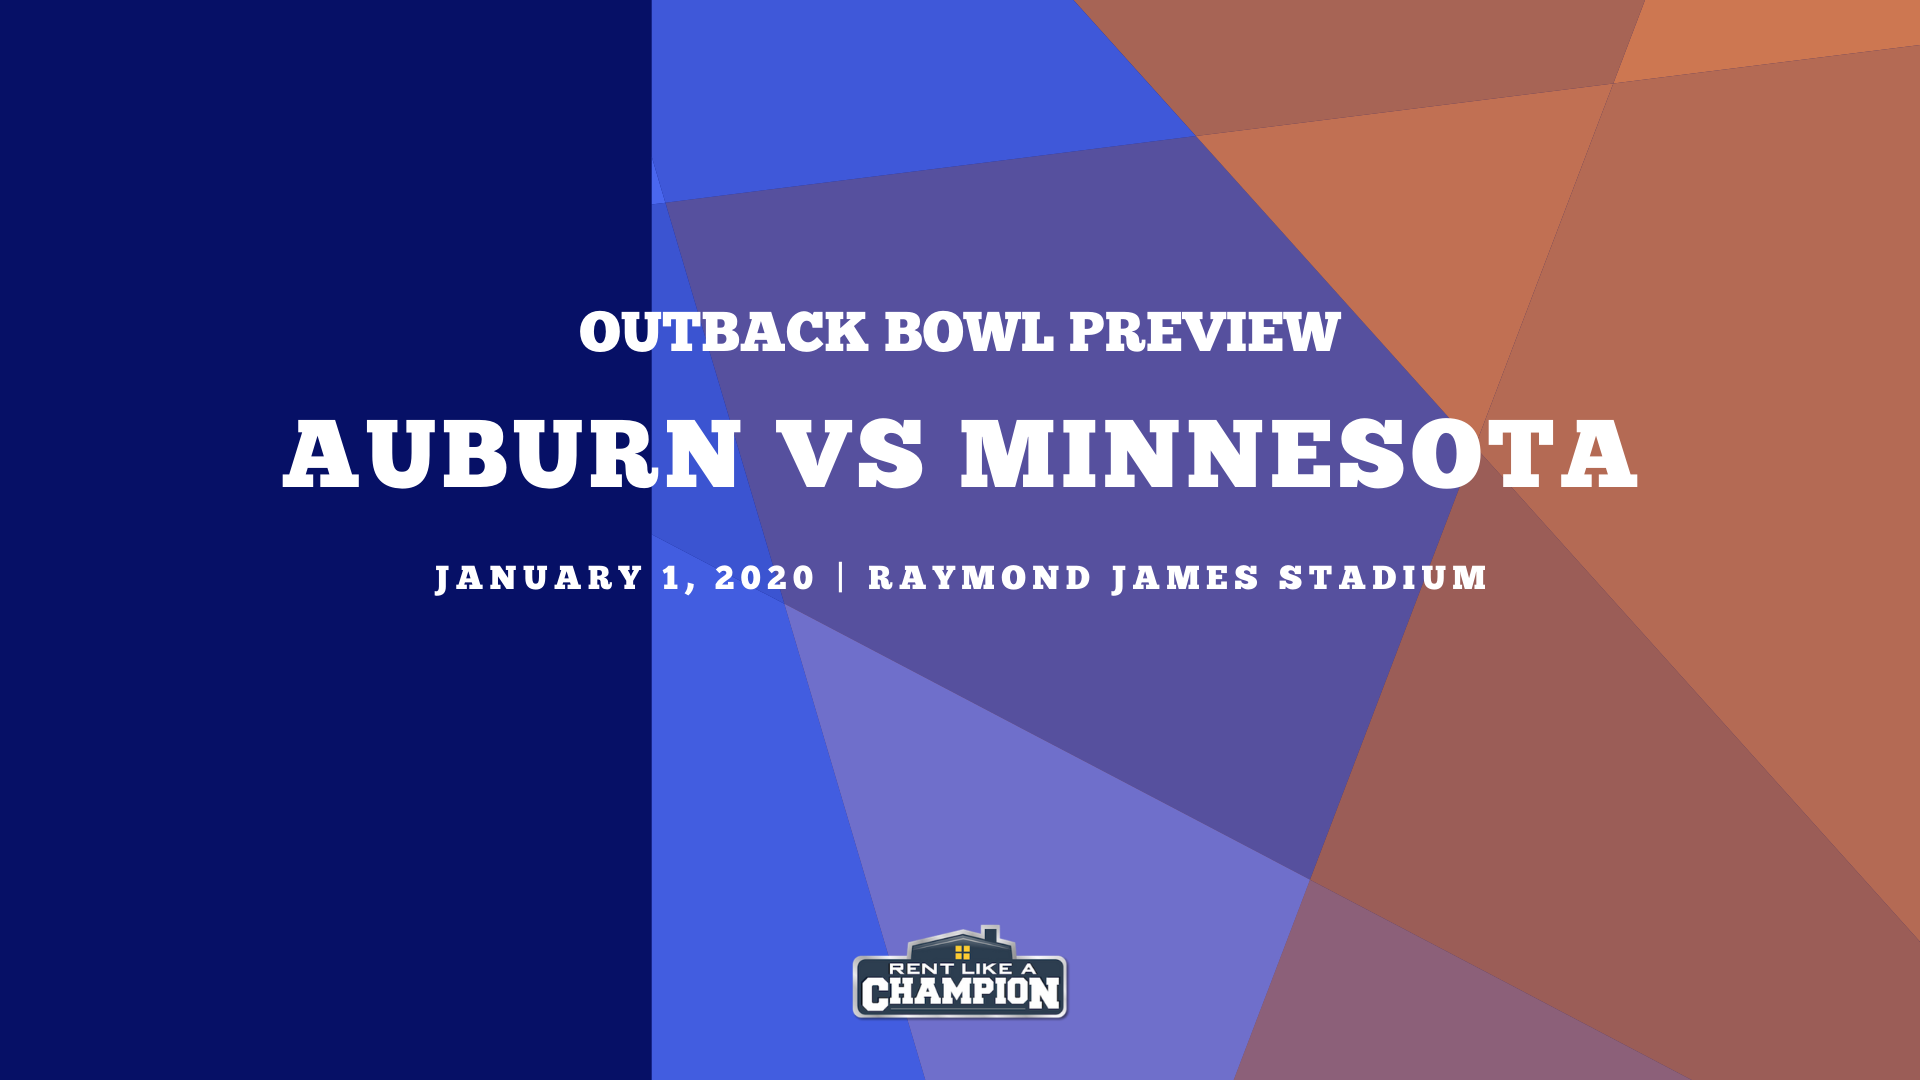 Outback Bowl Preview: Auburn and Minnesota get set for a New Year's clash